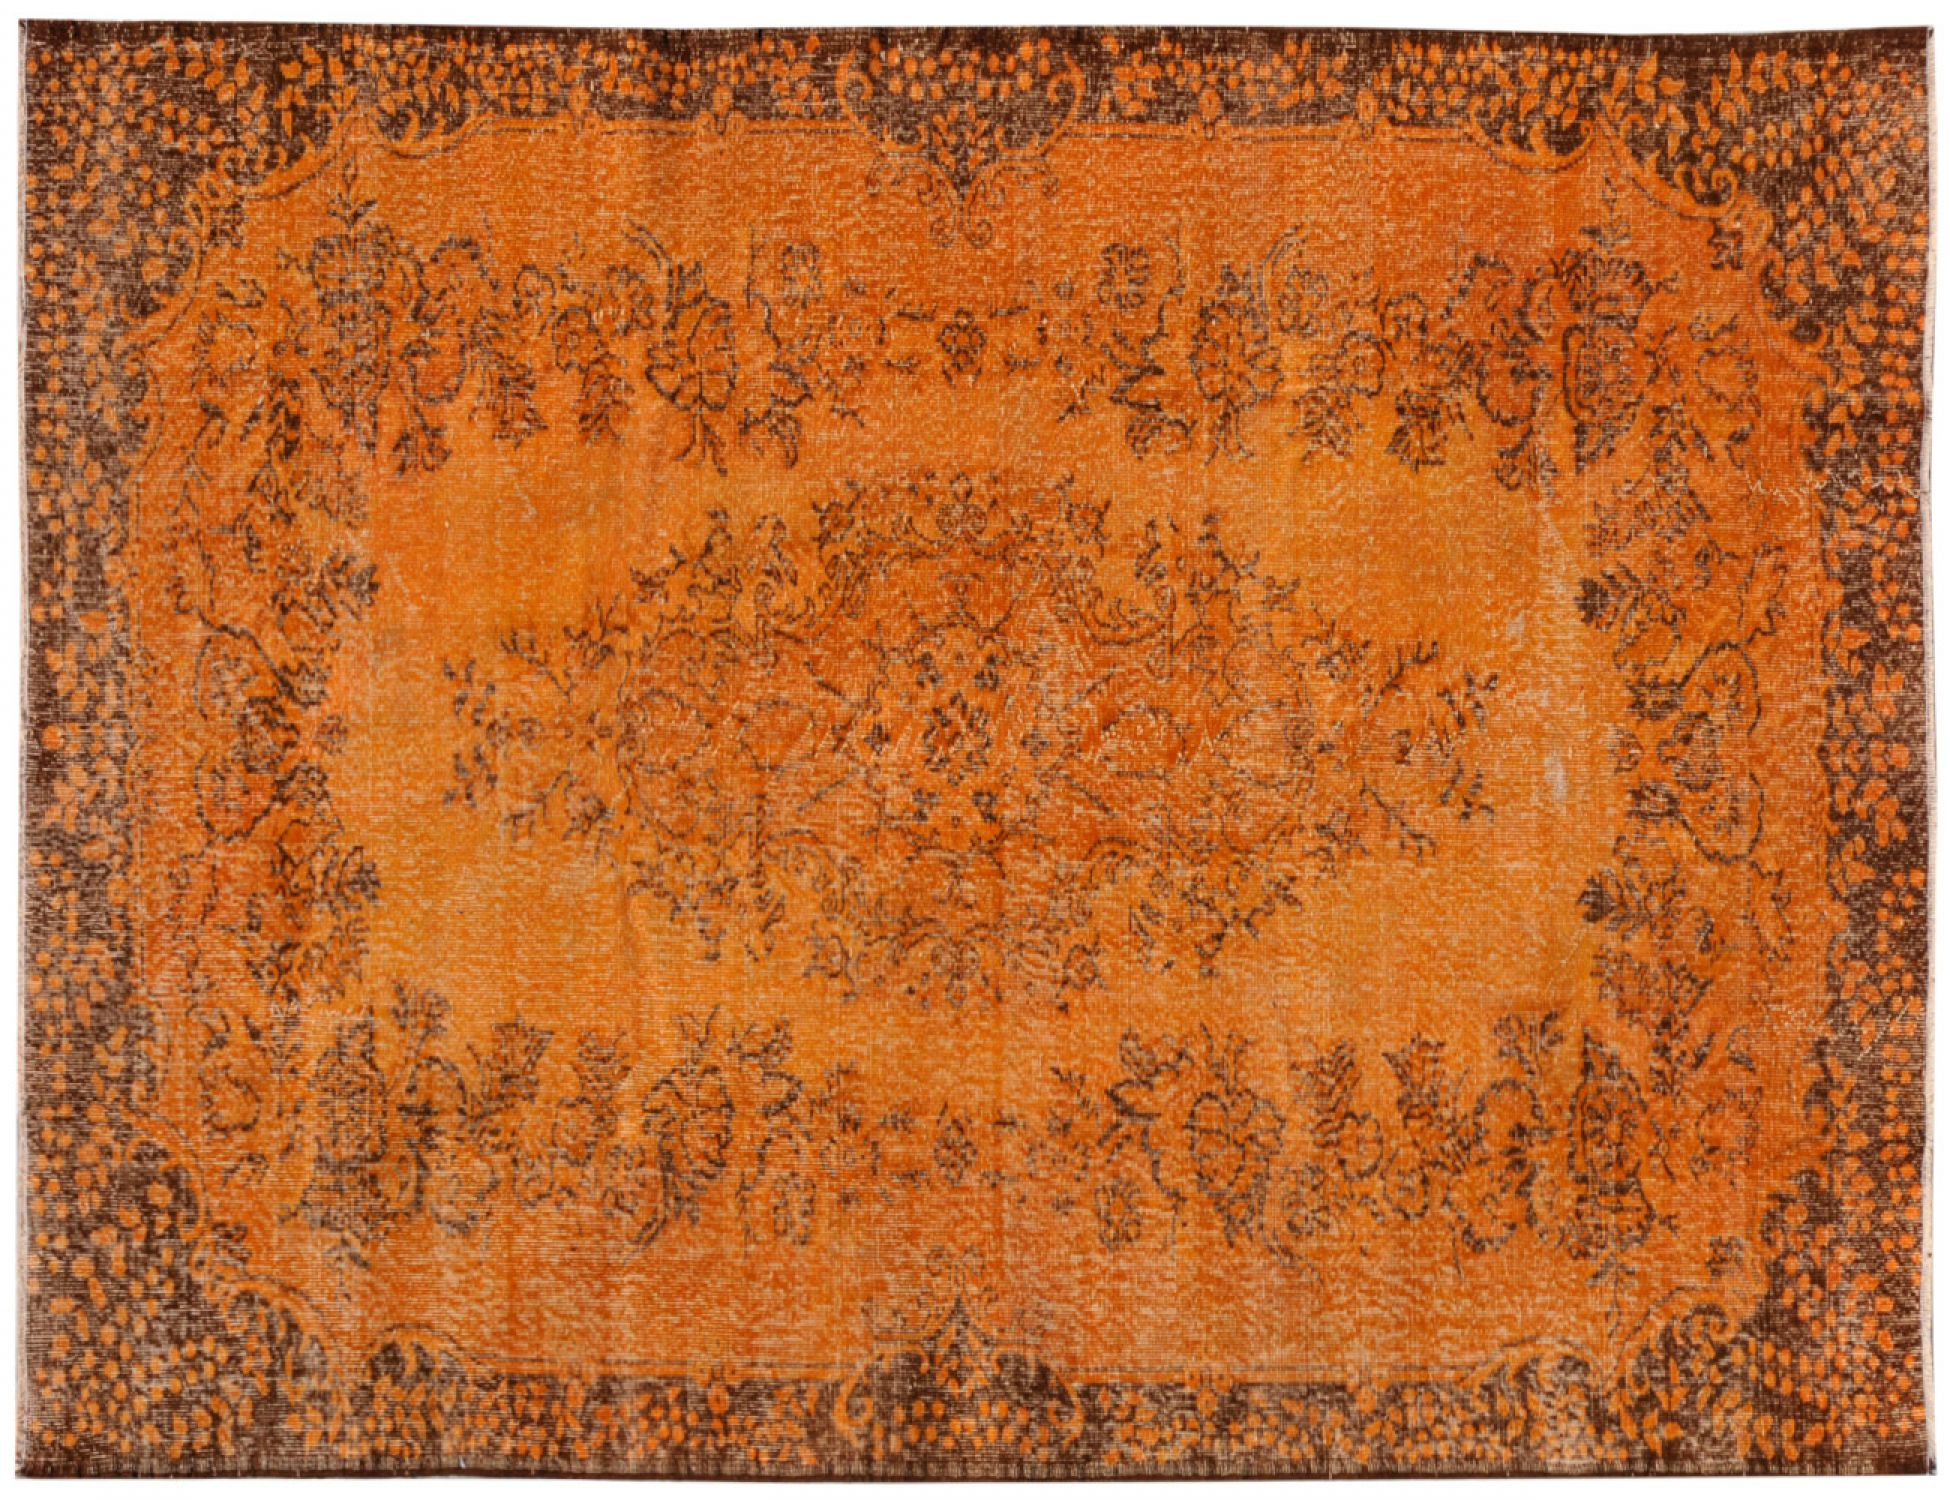 Vintage Carpet  orange <br/>306 x 183 cm